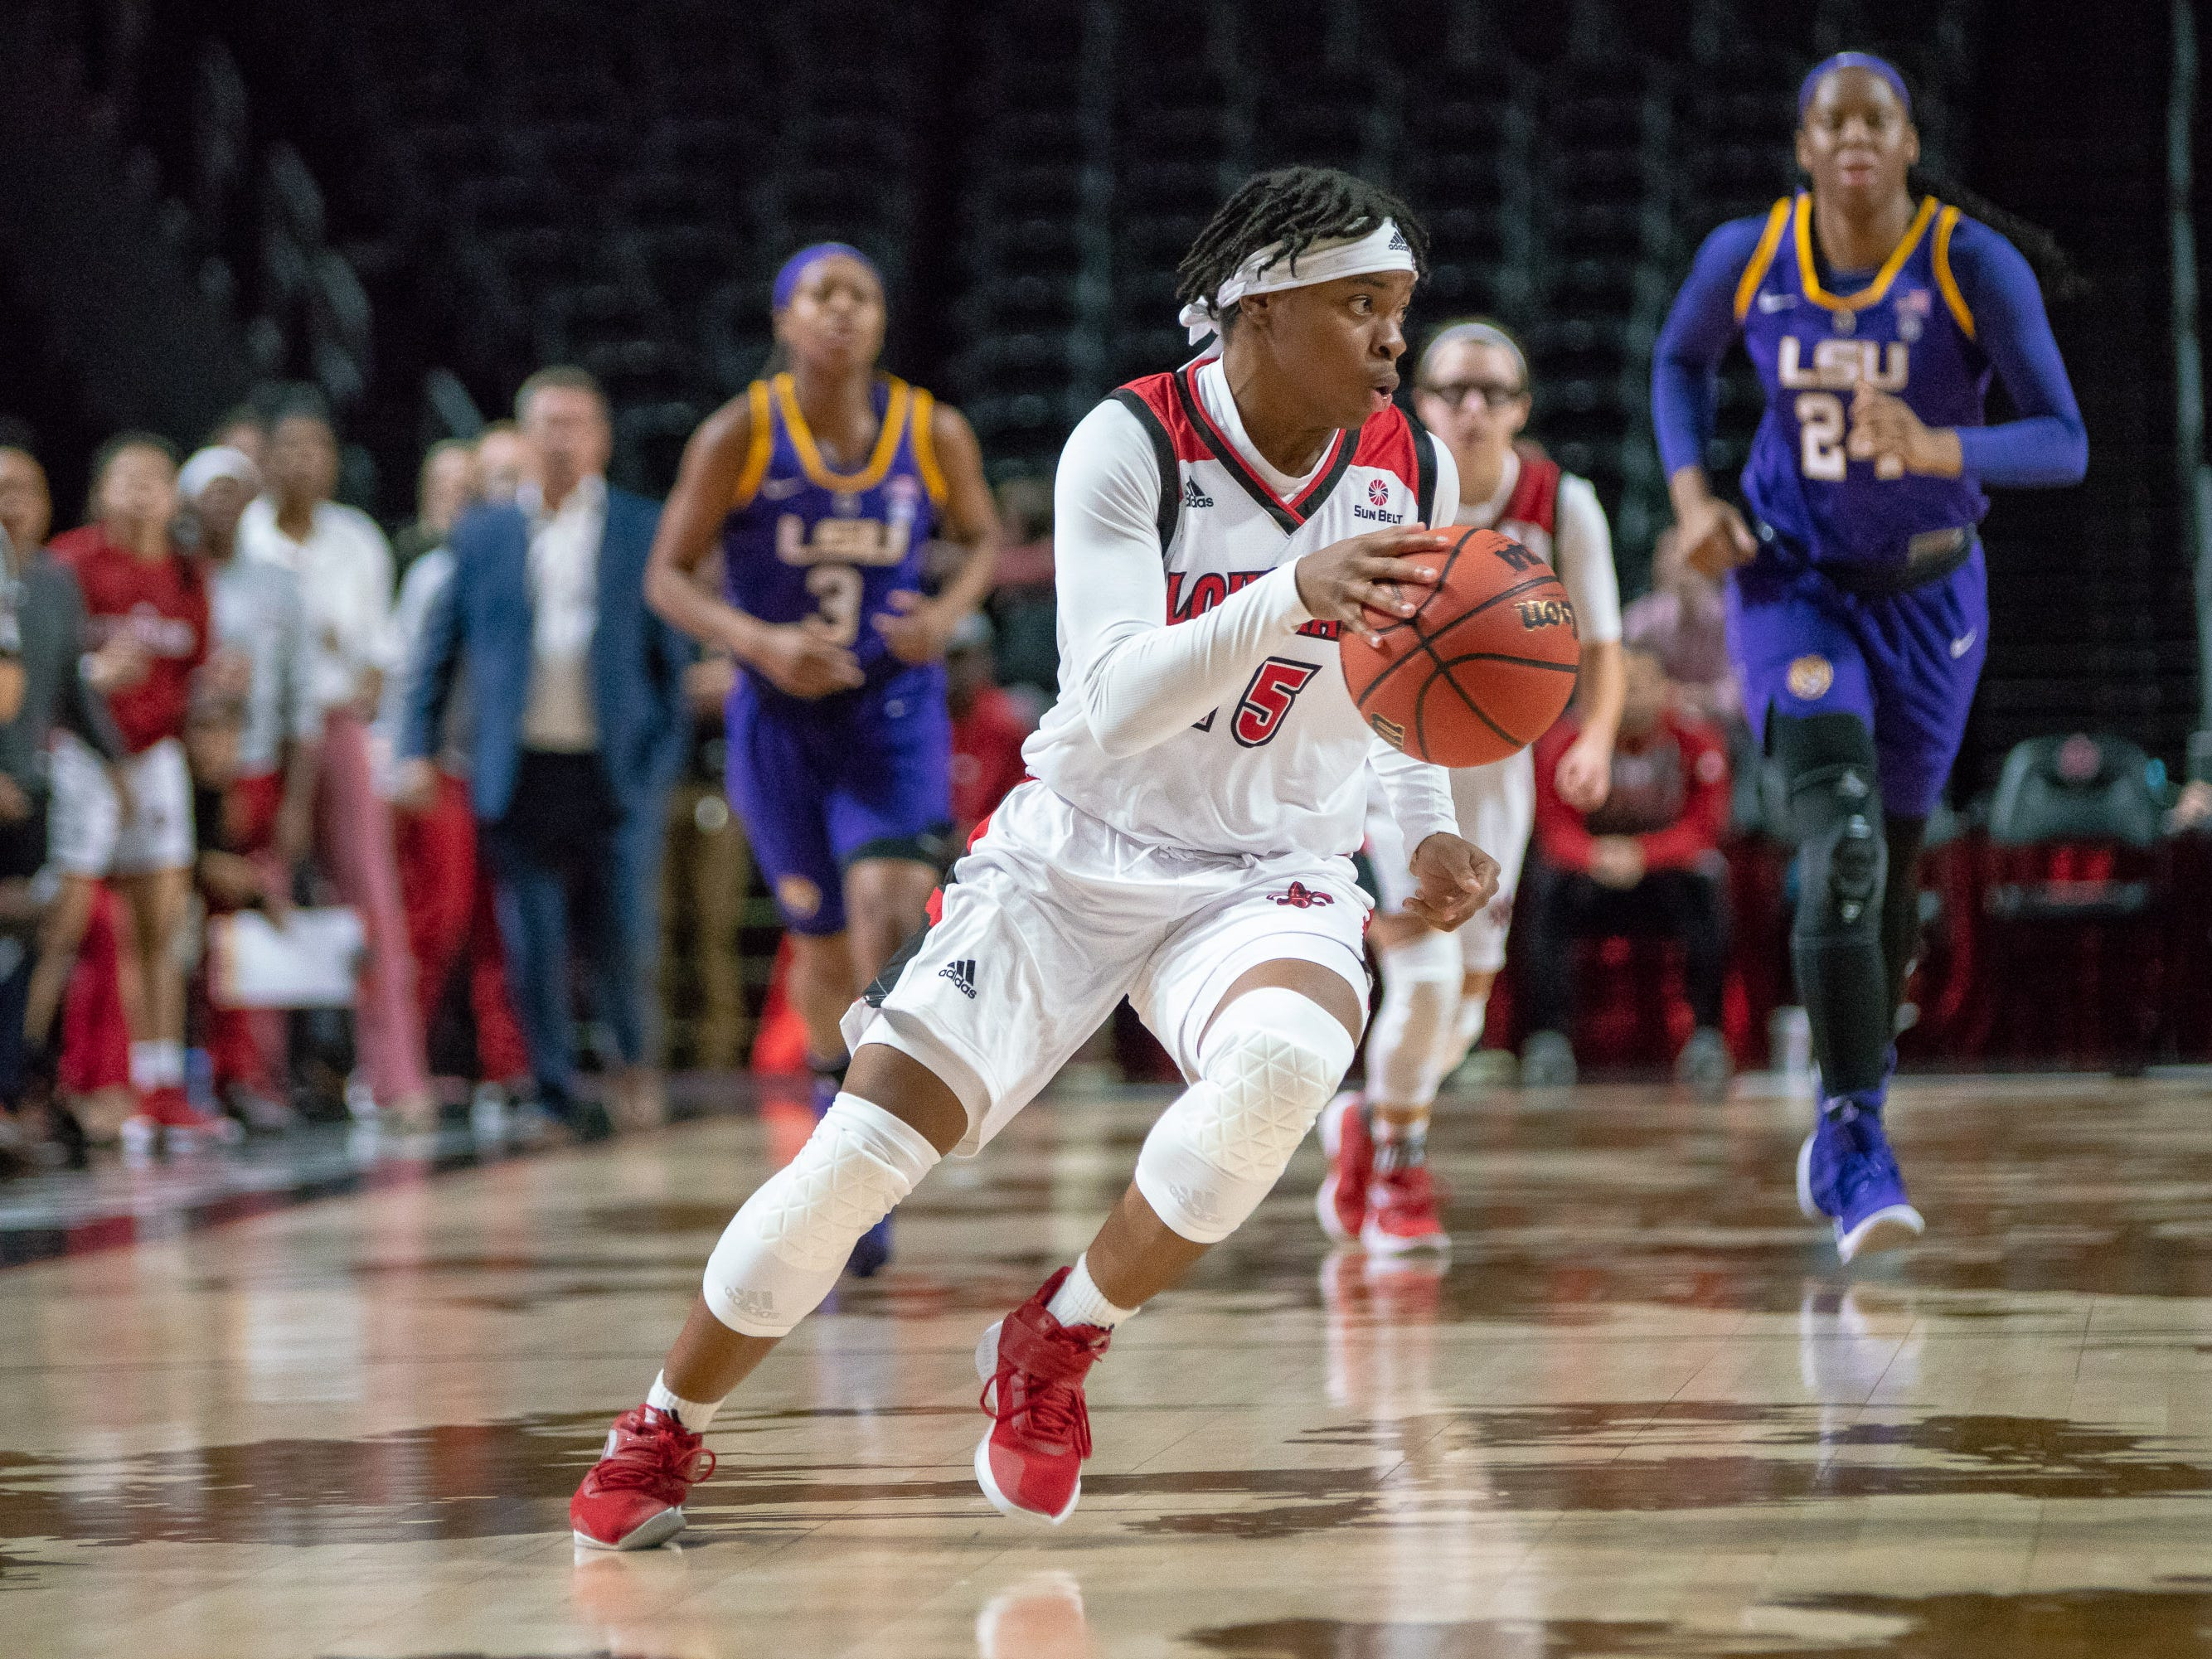 UL's Diamond Morrison moves the ball down the court as the Ragin' Cajuns play against LSU Tigers at the Cajundome on Dec. 20, 2018.